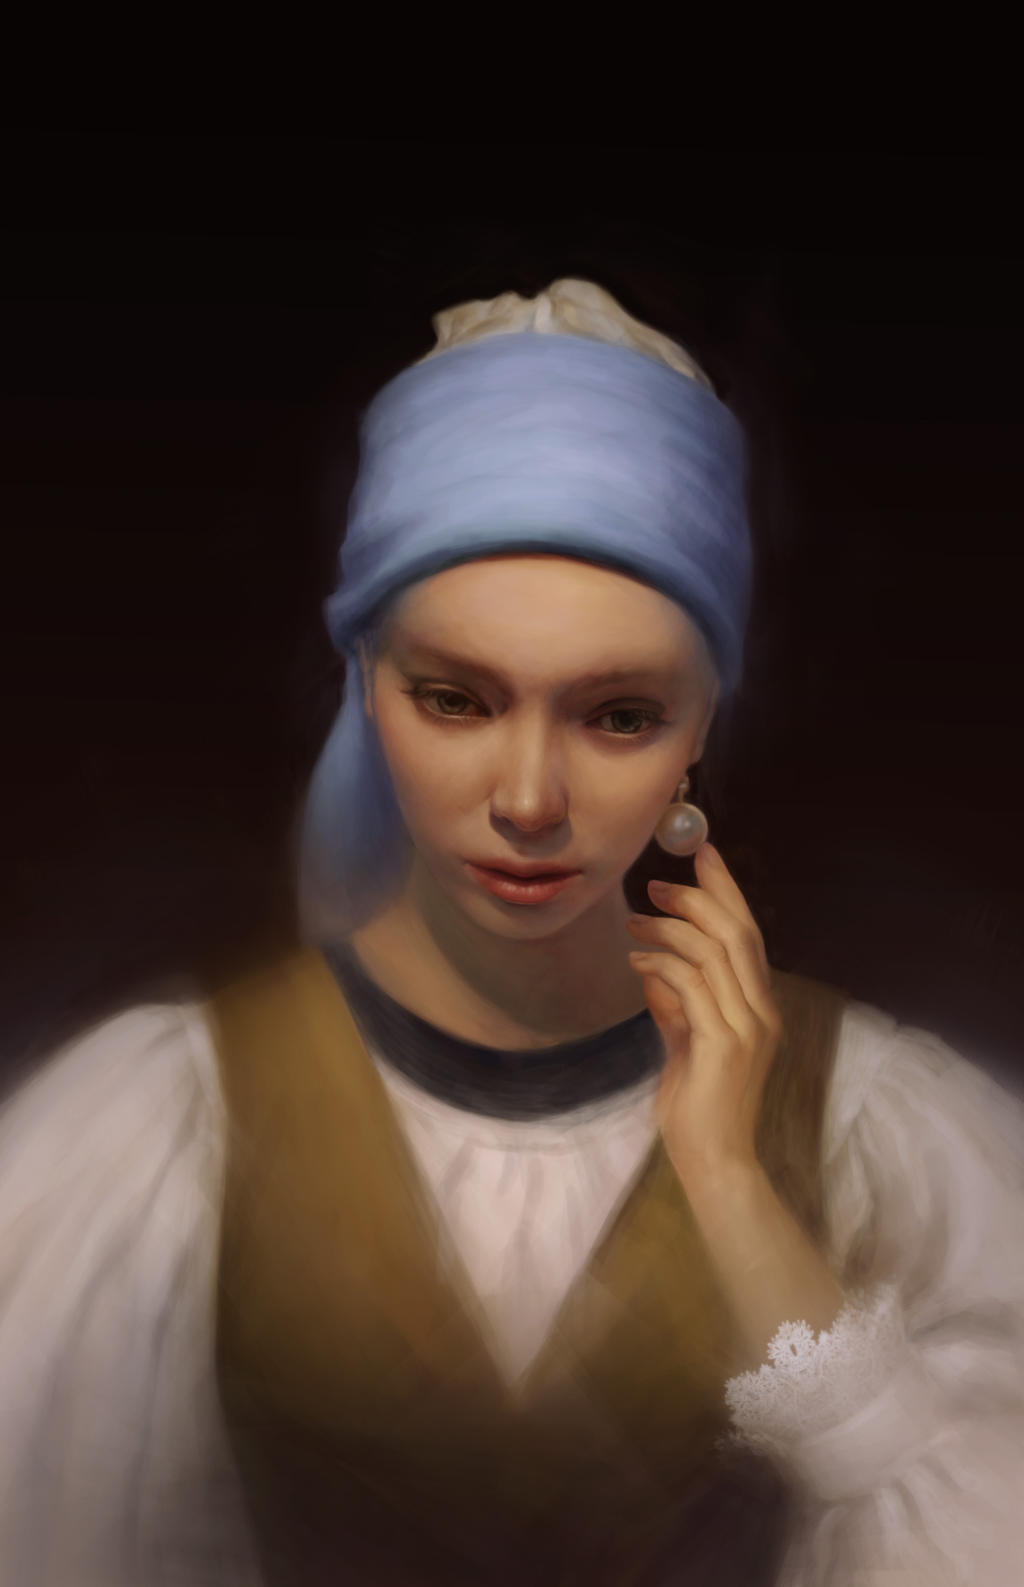 girl a pearl earring by fio ng on girl a pearl earring by fio ng